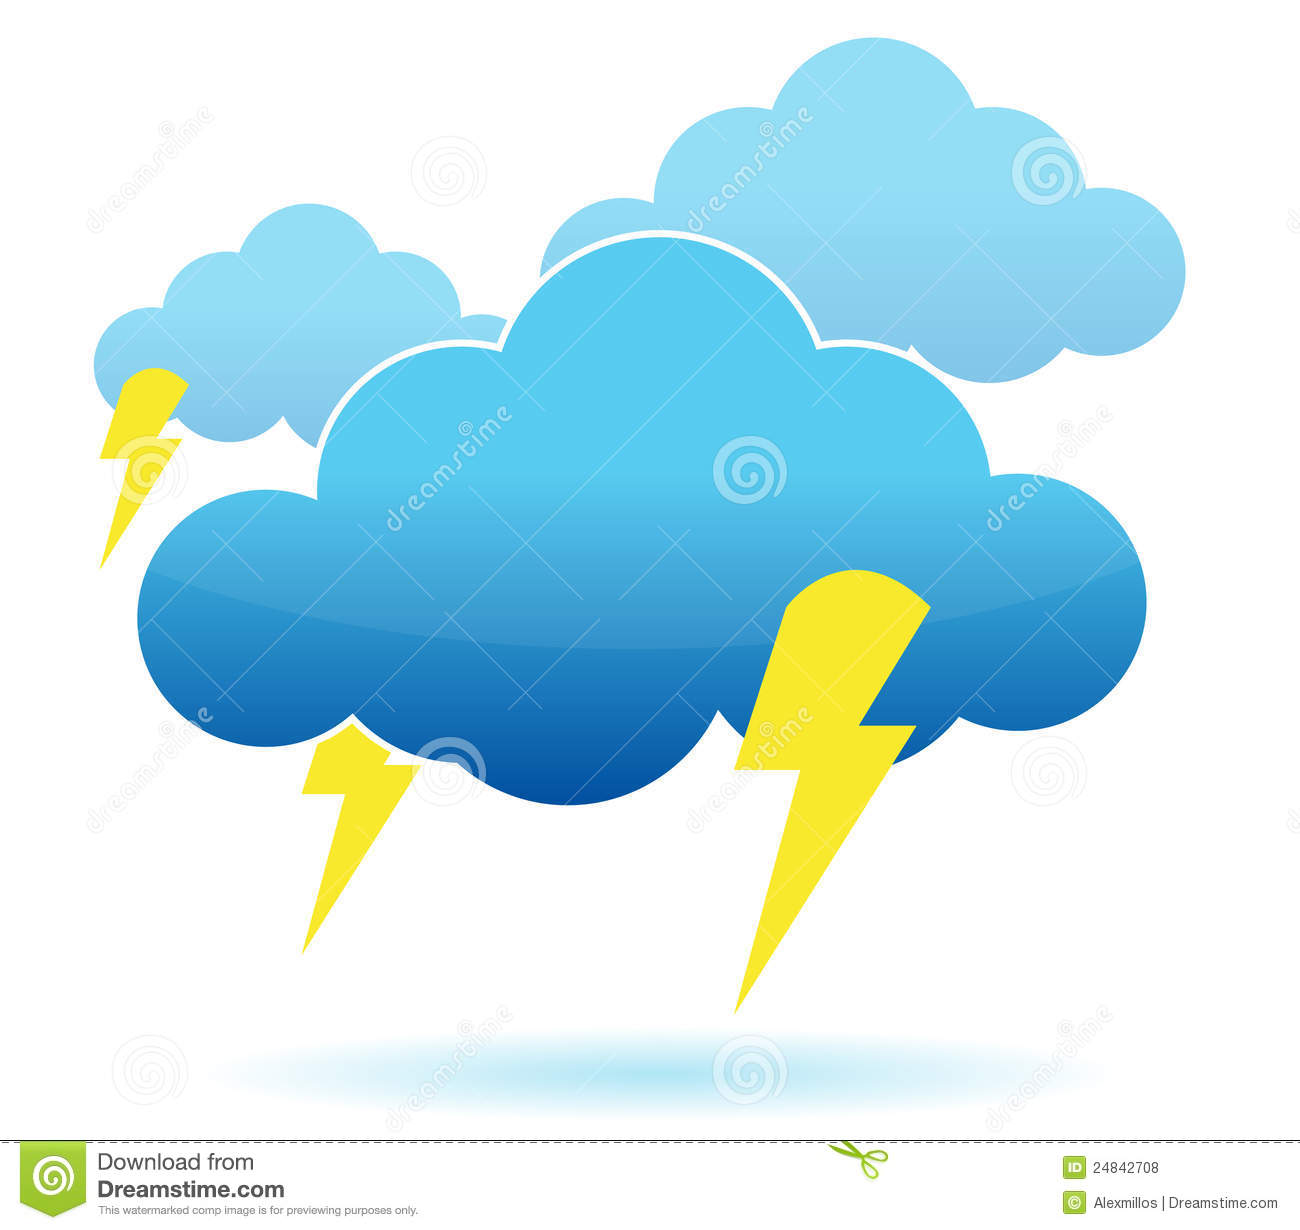 Thunder Cloud And Lightning Illustration Royalty Free Stock Photos ...: https://www.dreamstime.com/royalty-free-stock-photos-thunder-cloud...